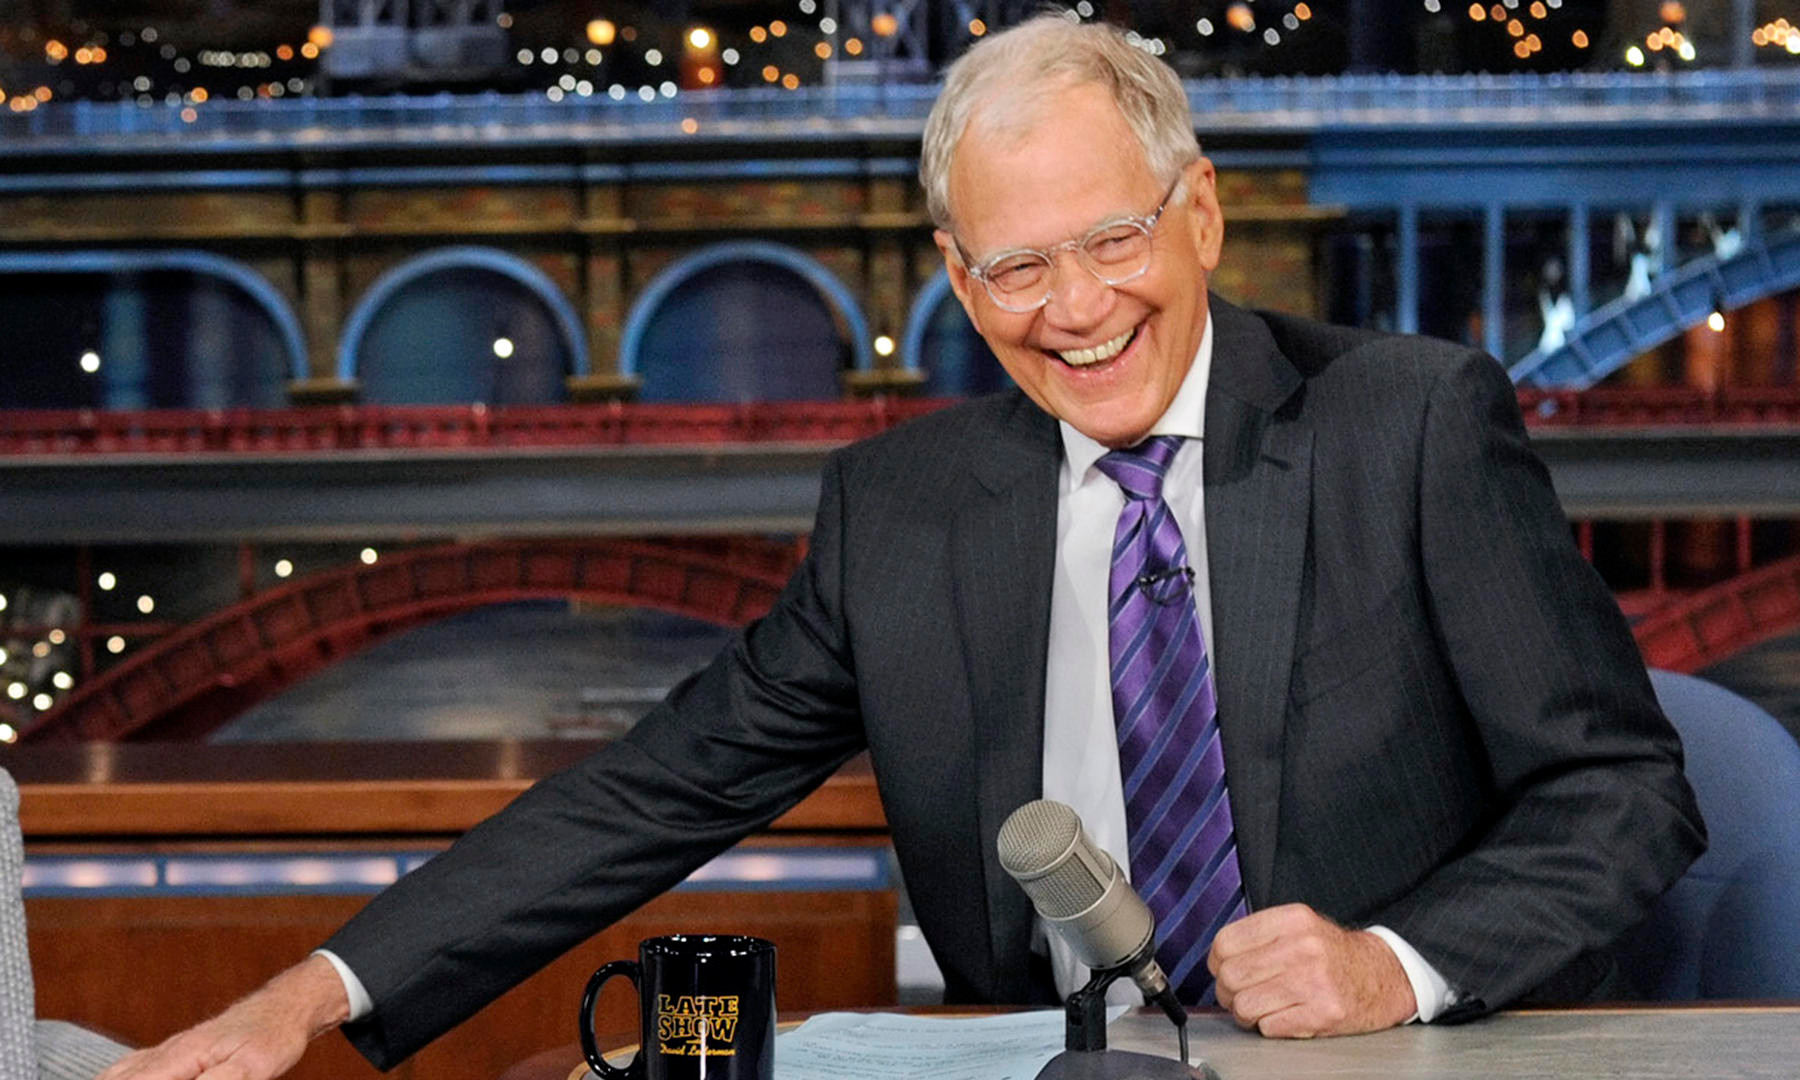 Late night show with David Letterman